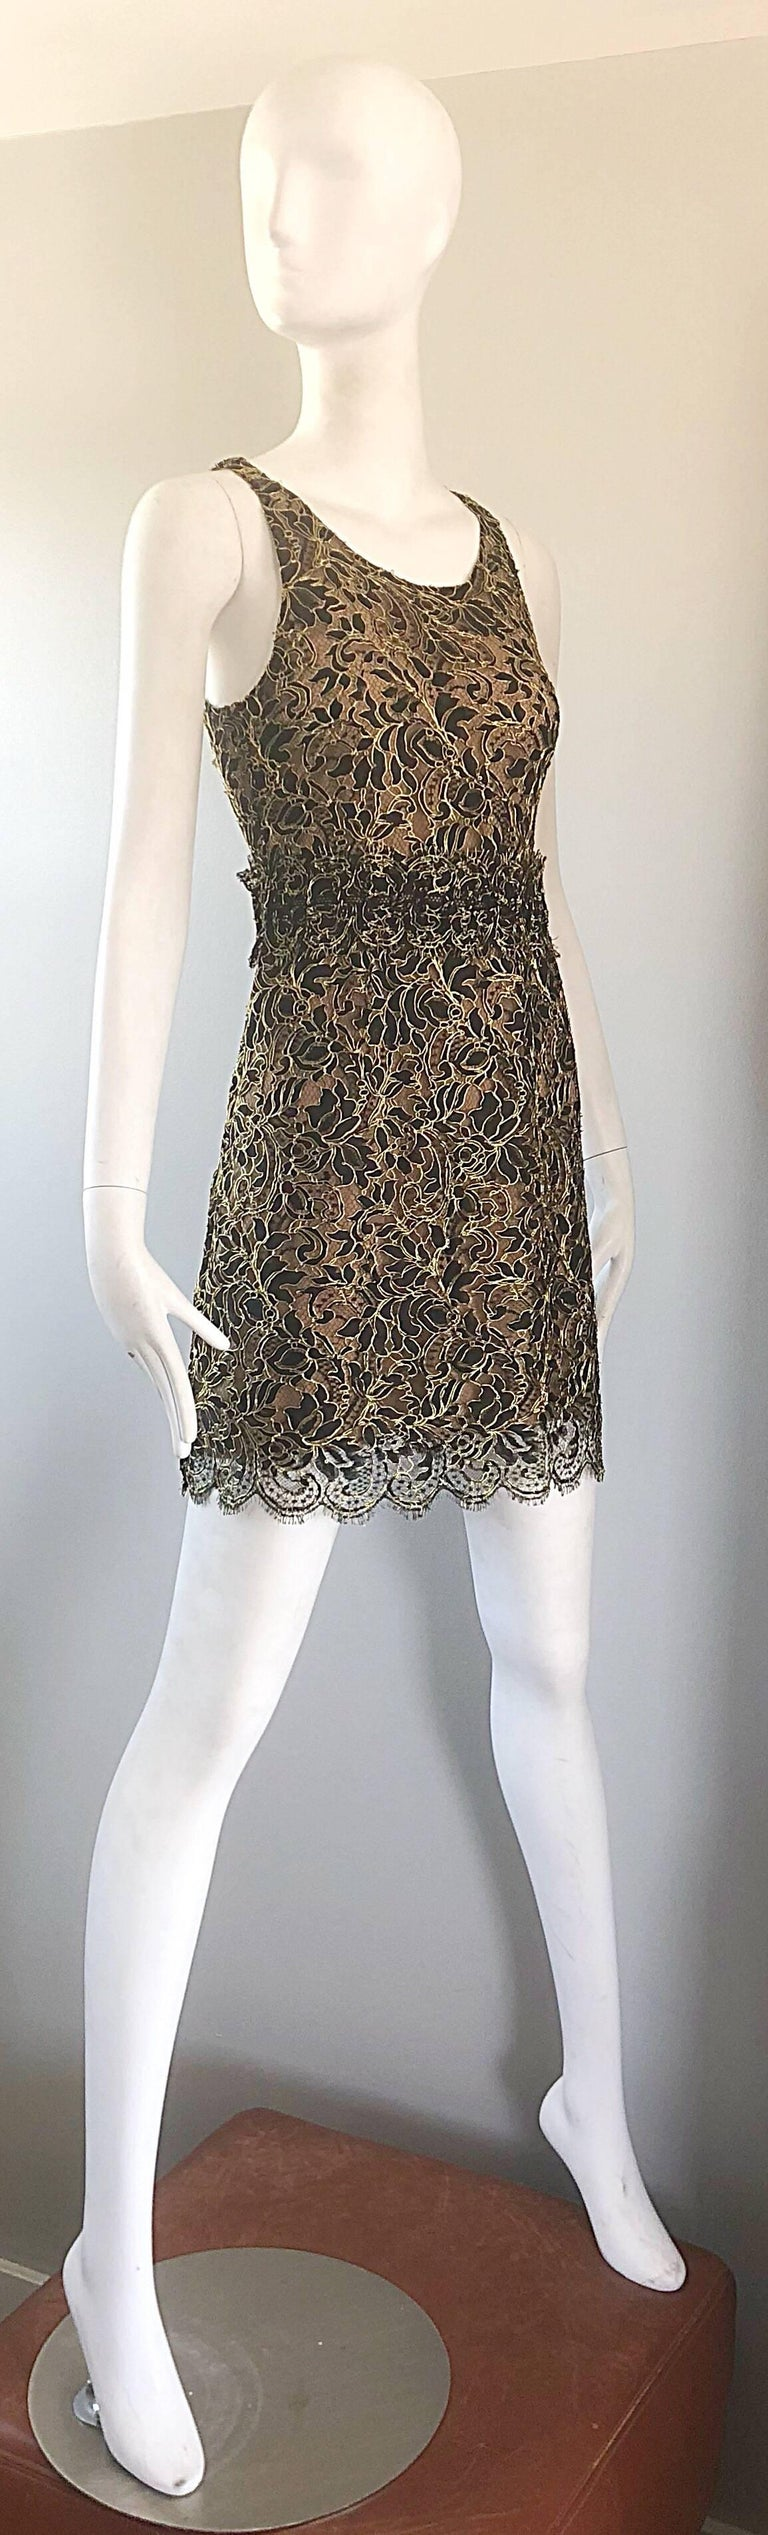 Balenciaga by Nicolas Ghesquiere Black + Gold + Nude Silk Chiffon Lace Dress For Sale 2